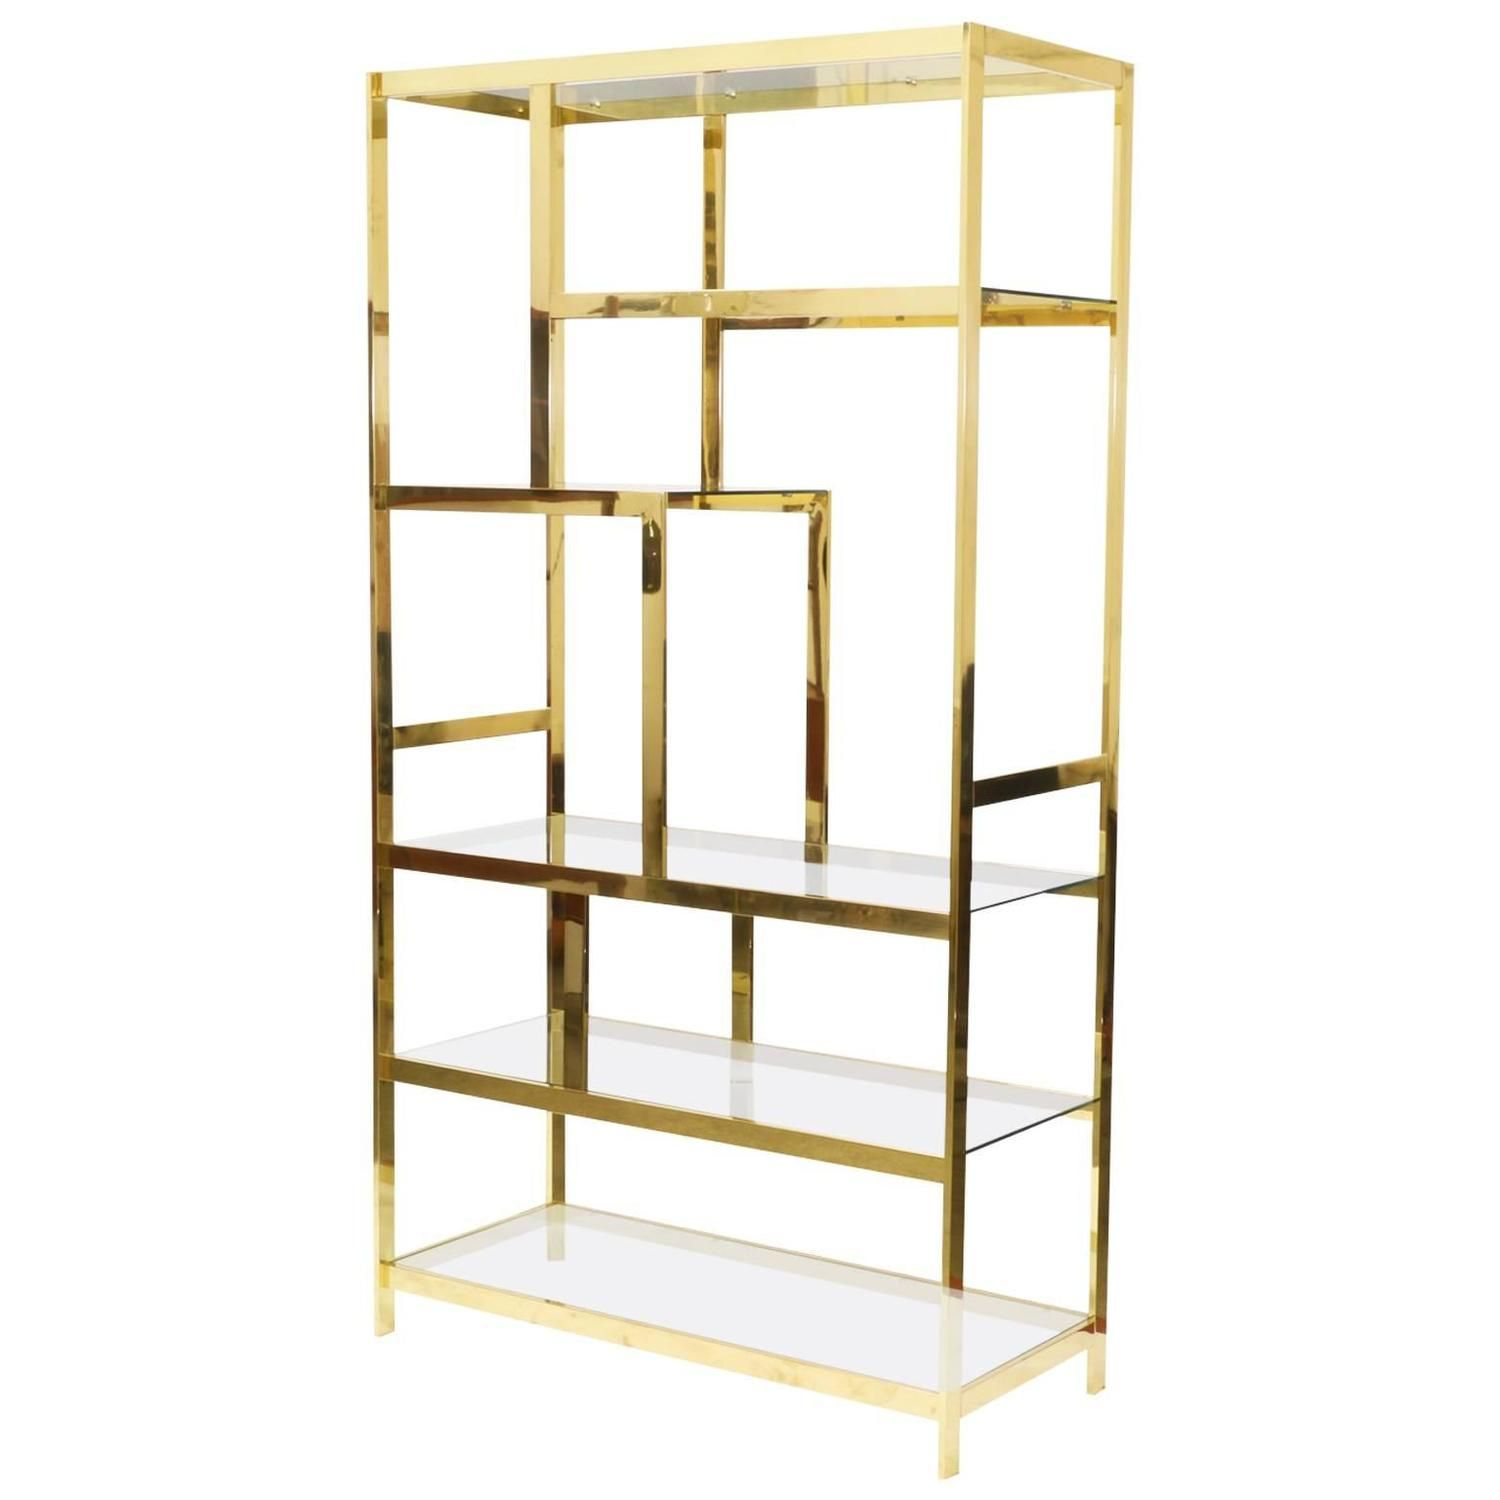 midcentury brass etagere display shelf unit  display shelves  - midcentury brass etagere display shelf unit